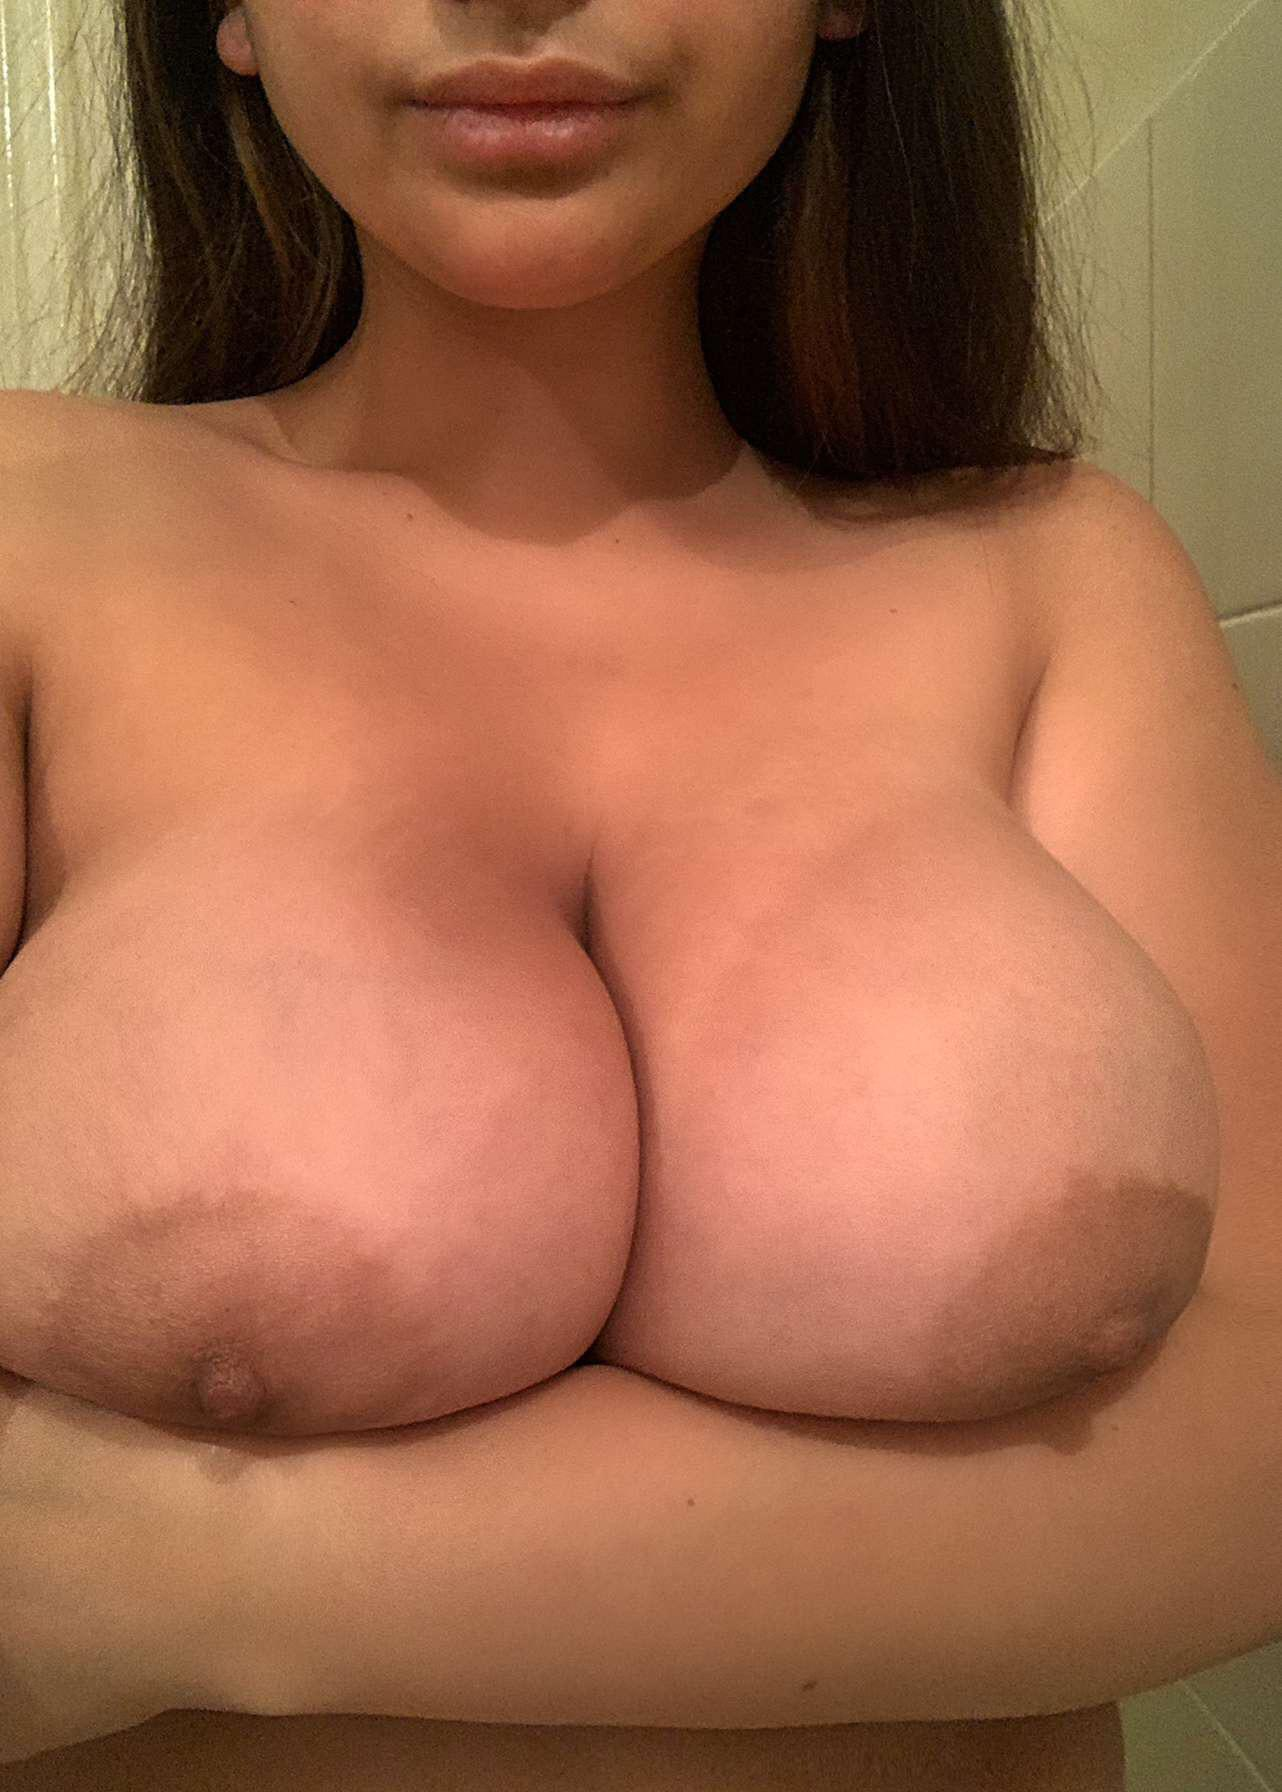 Cum on, you know you want a taste ;)